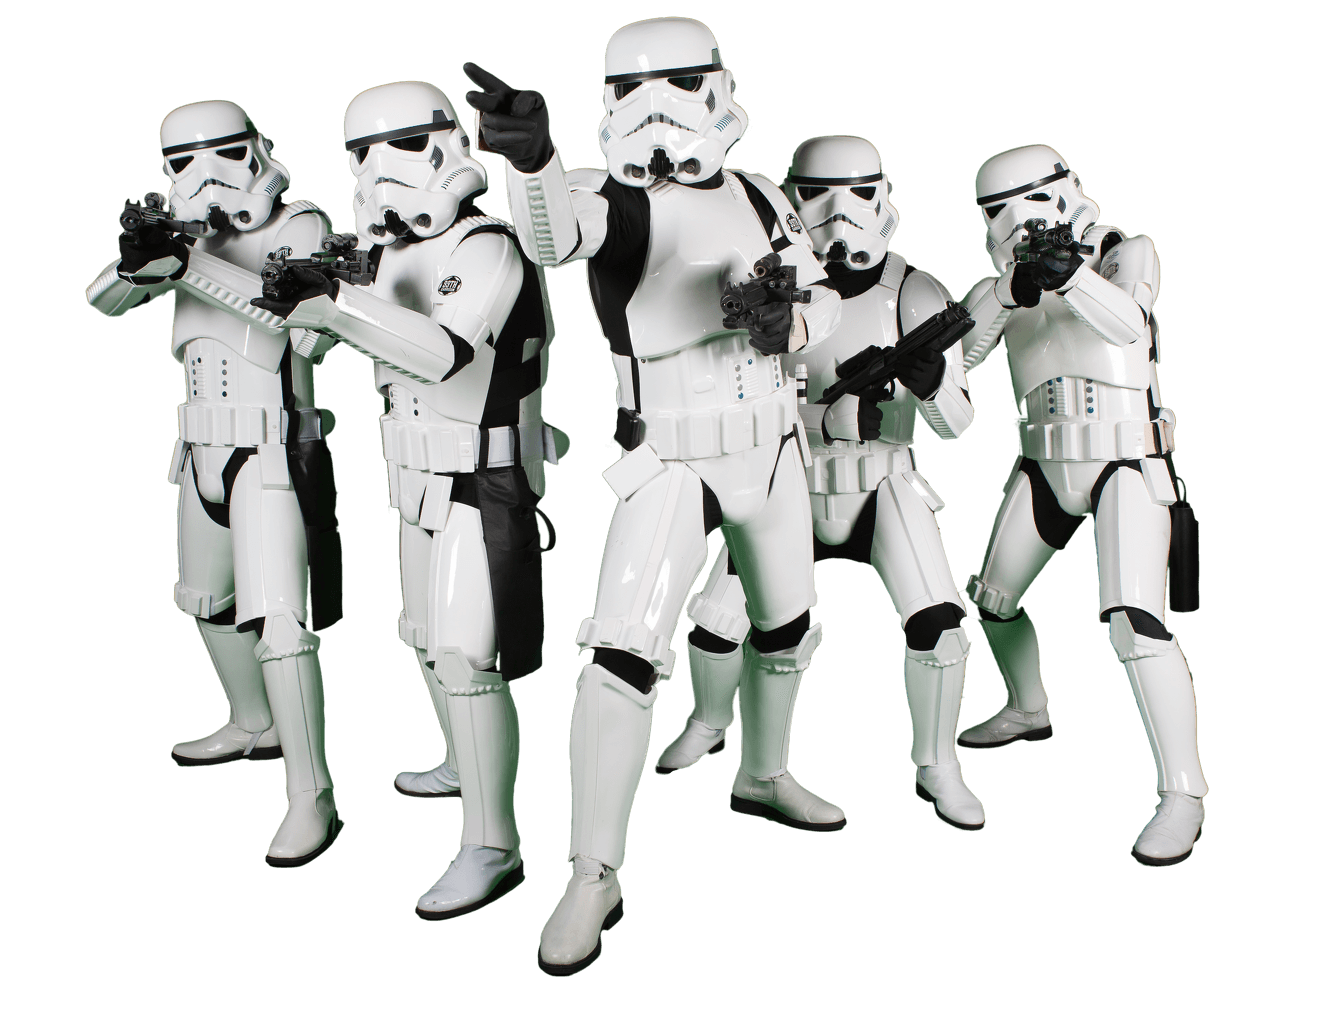 Star wars background clipart clipart transparent stock Star Troopers Star Wars Transparent PNG clipart transparent stock